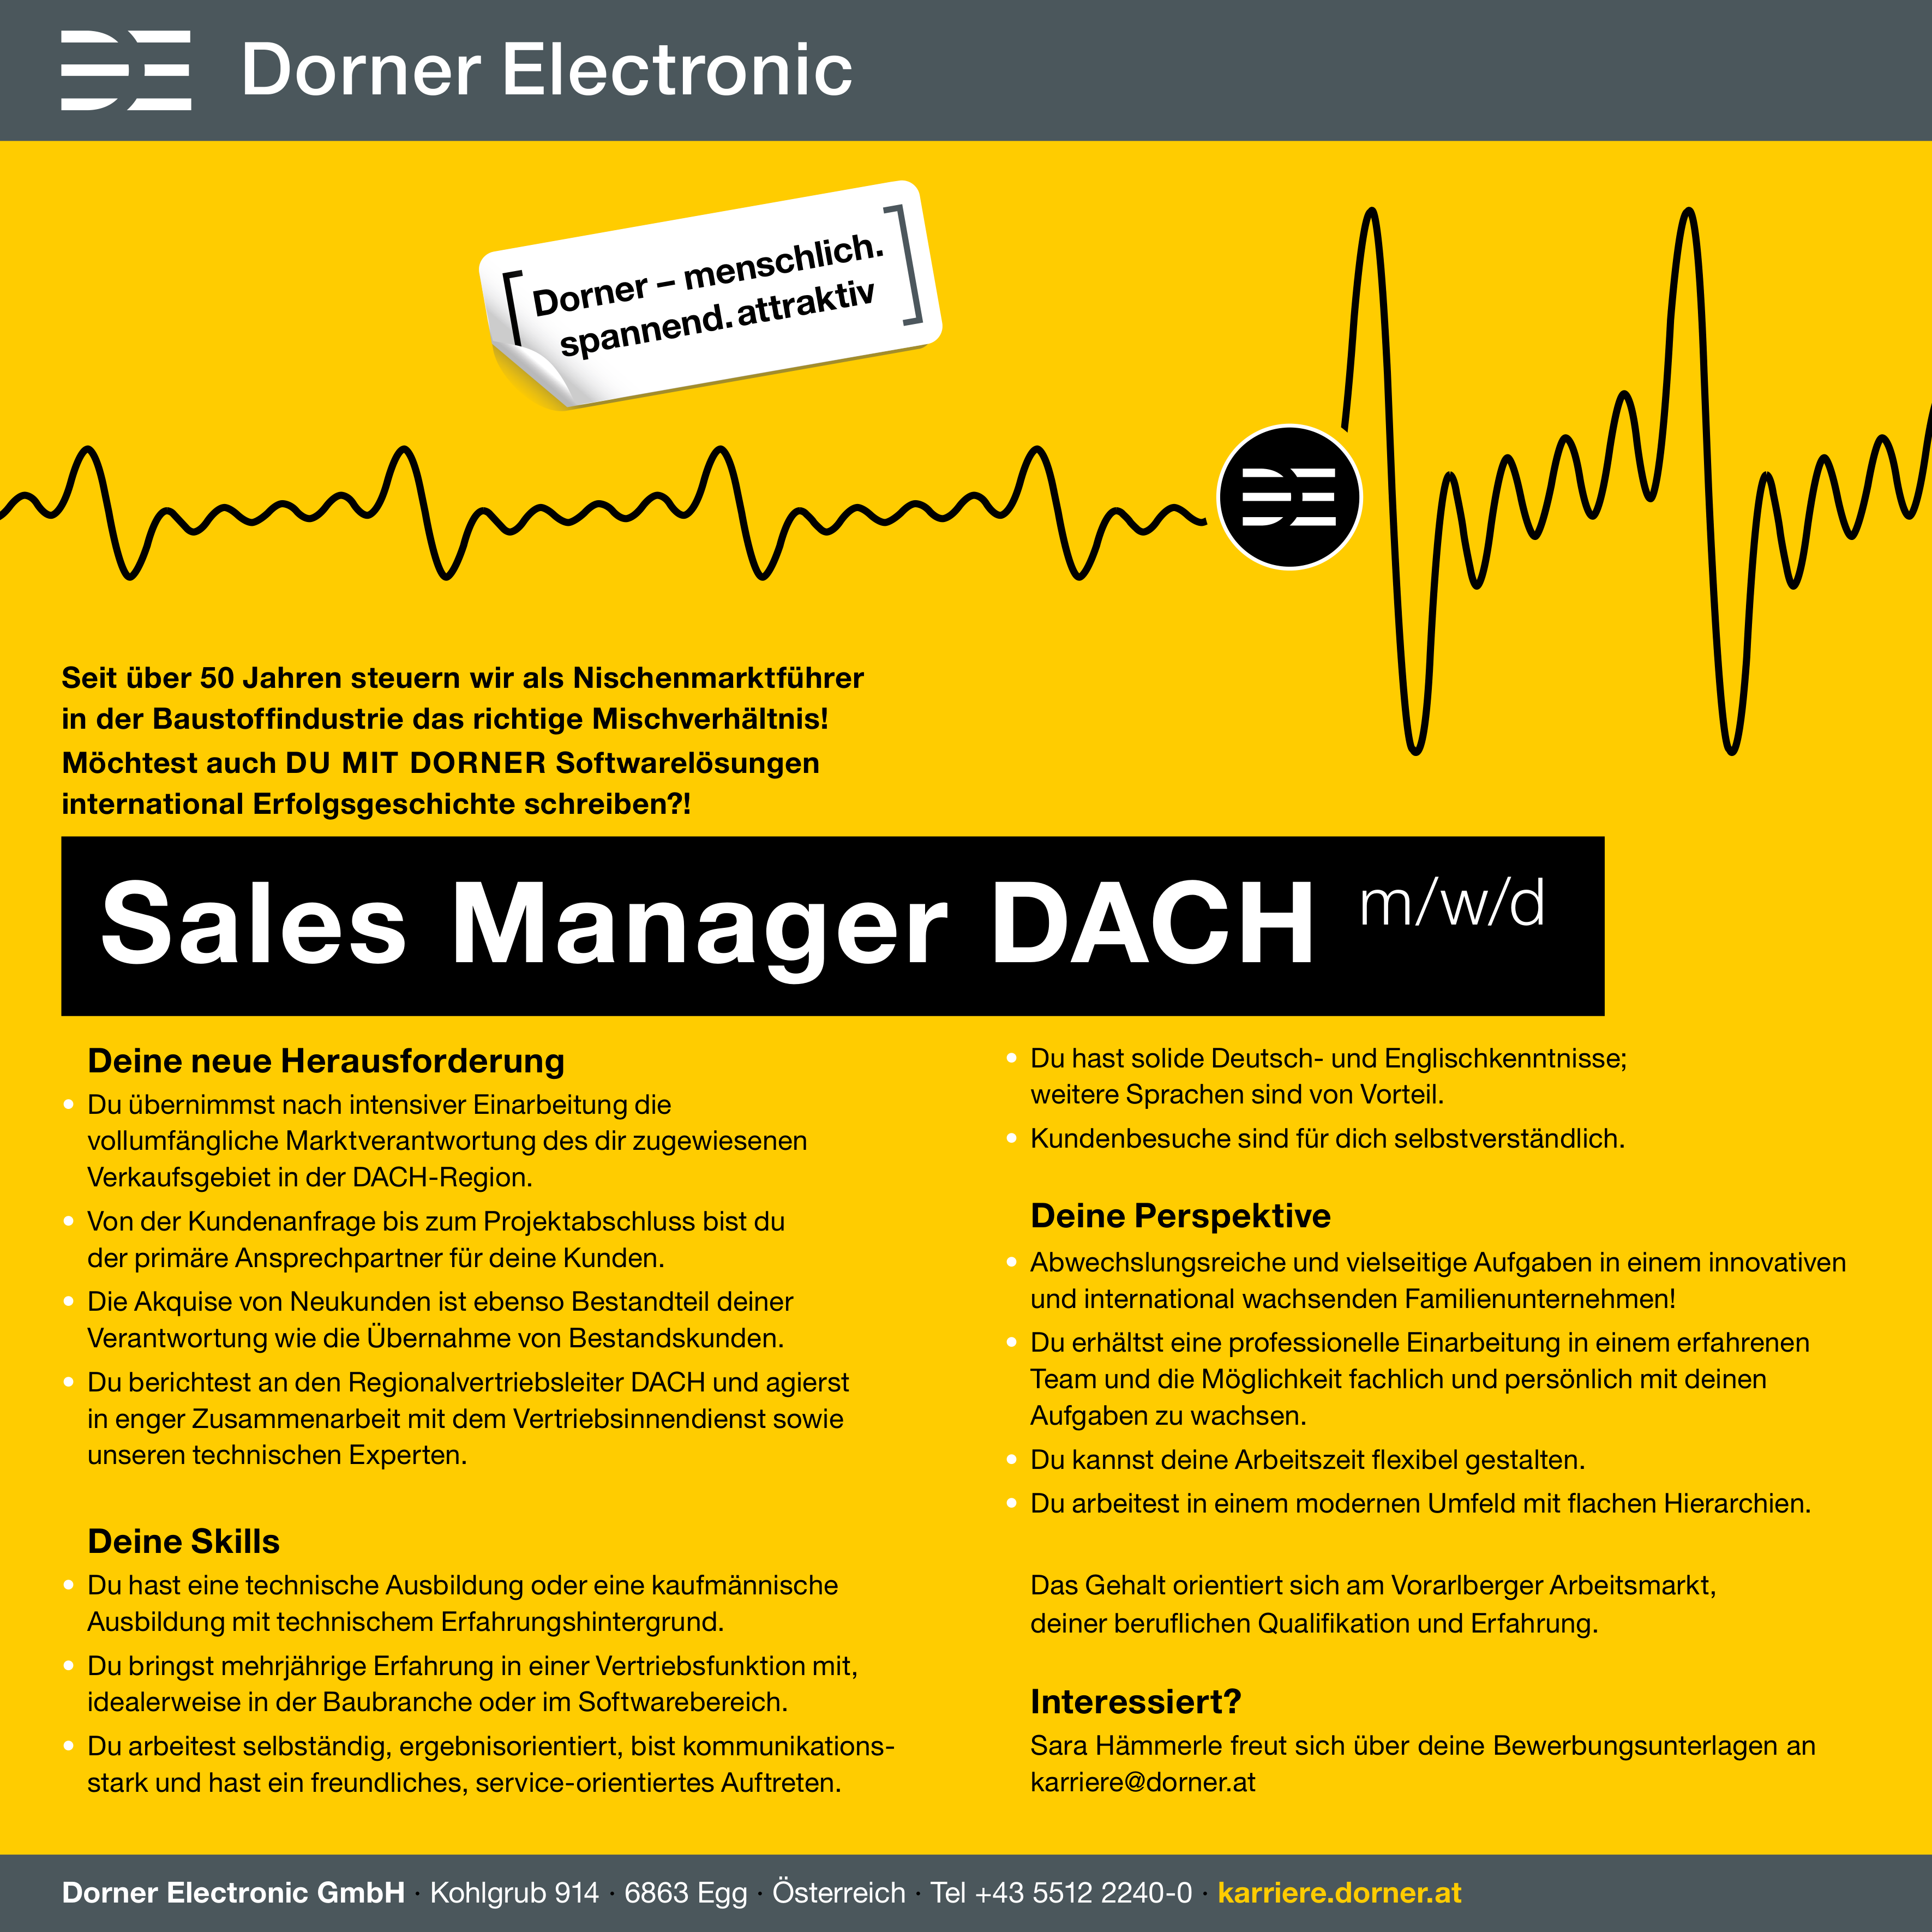 Sales Manager DACH (m/w/d)